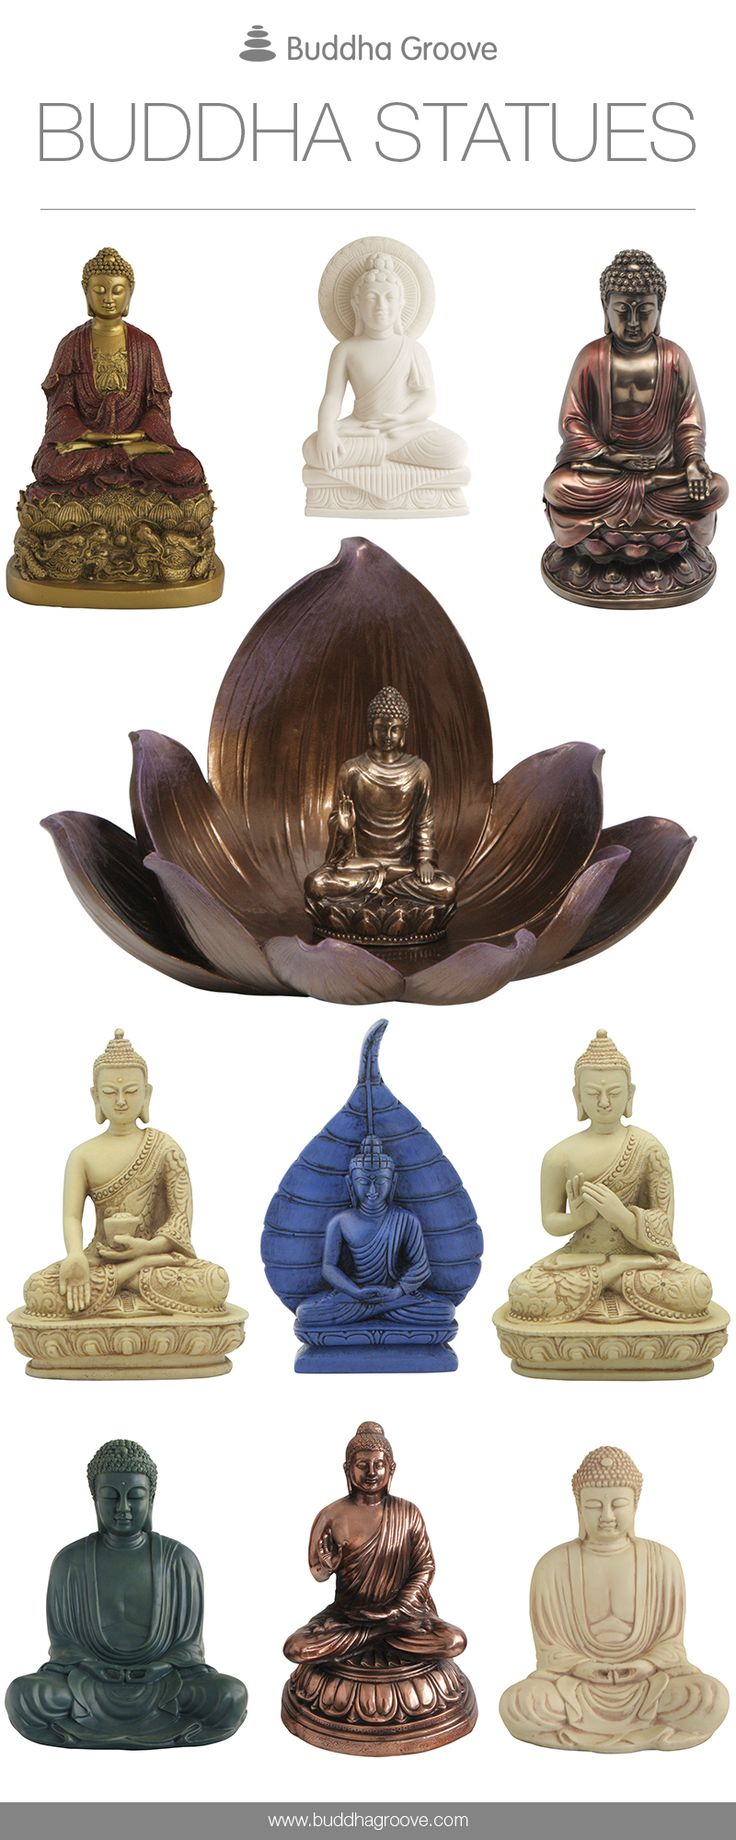 I also love Buddha! I have a bunch of them already. (: Buddha Statues by Buddha Groove